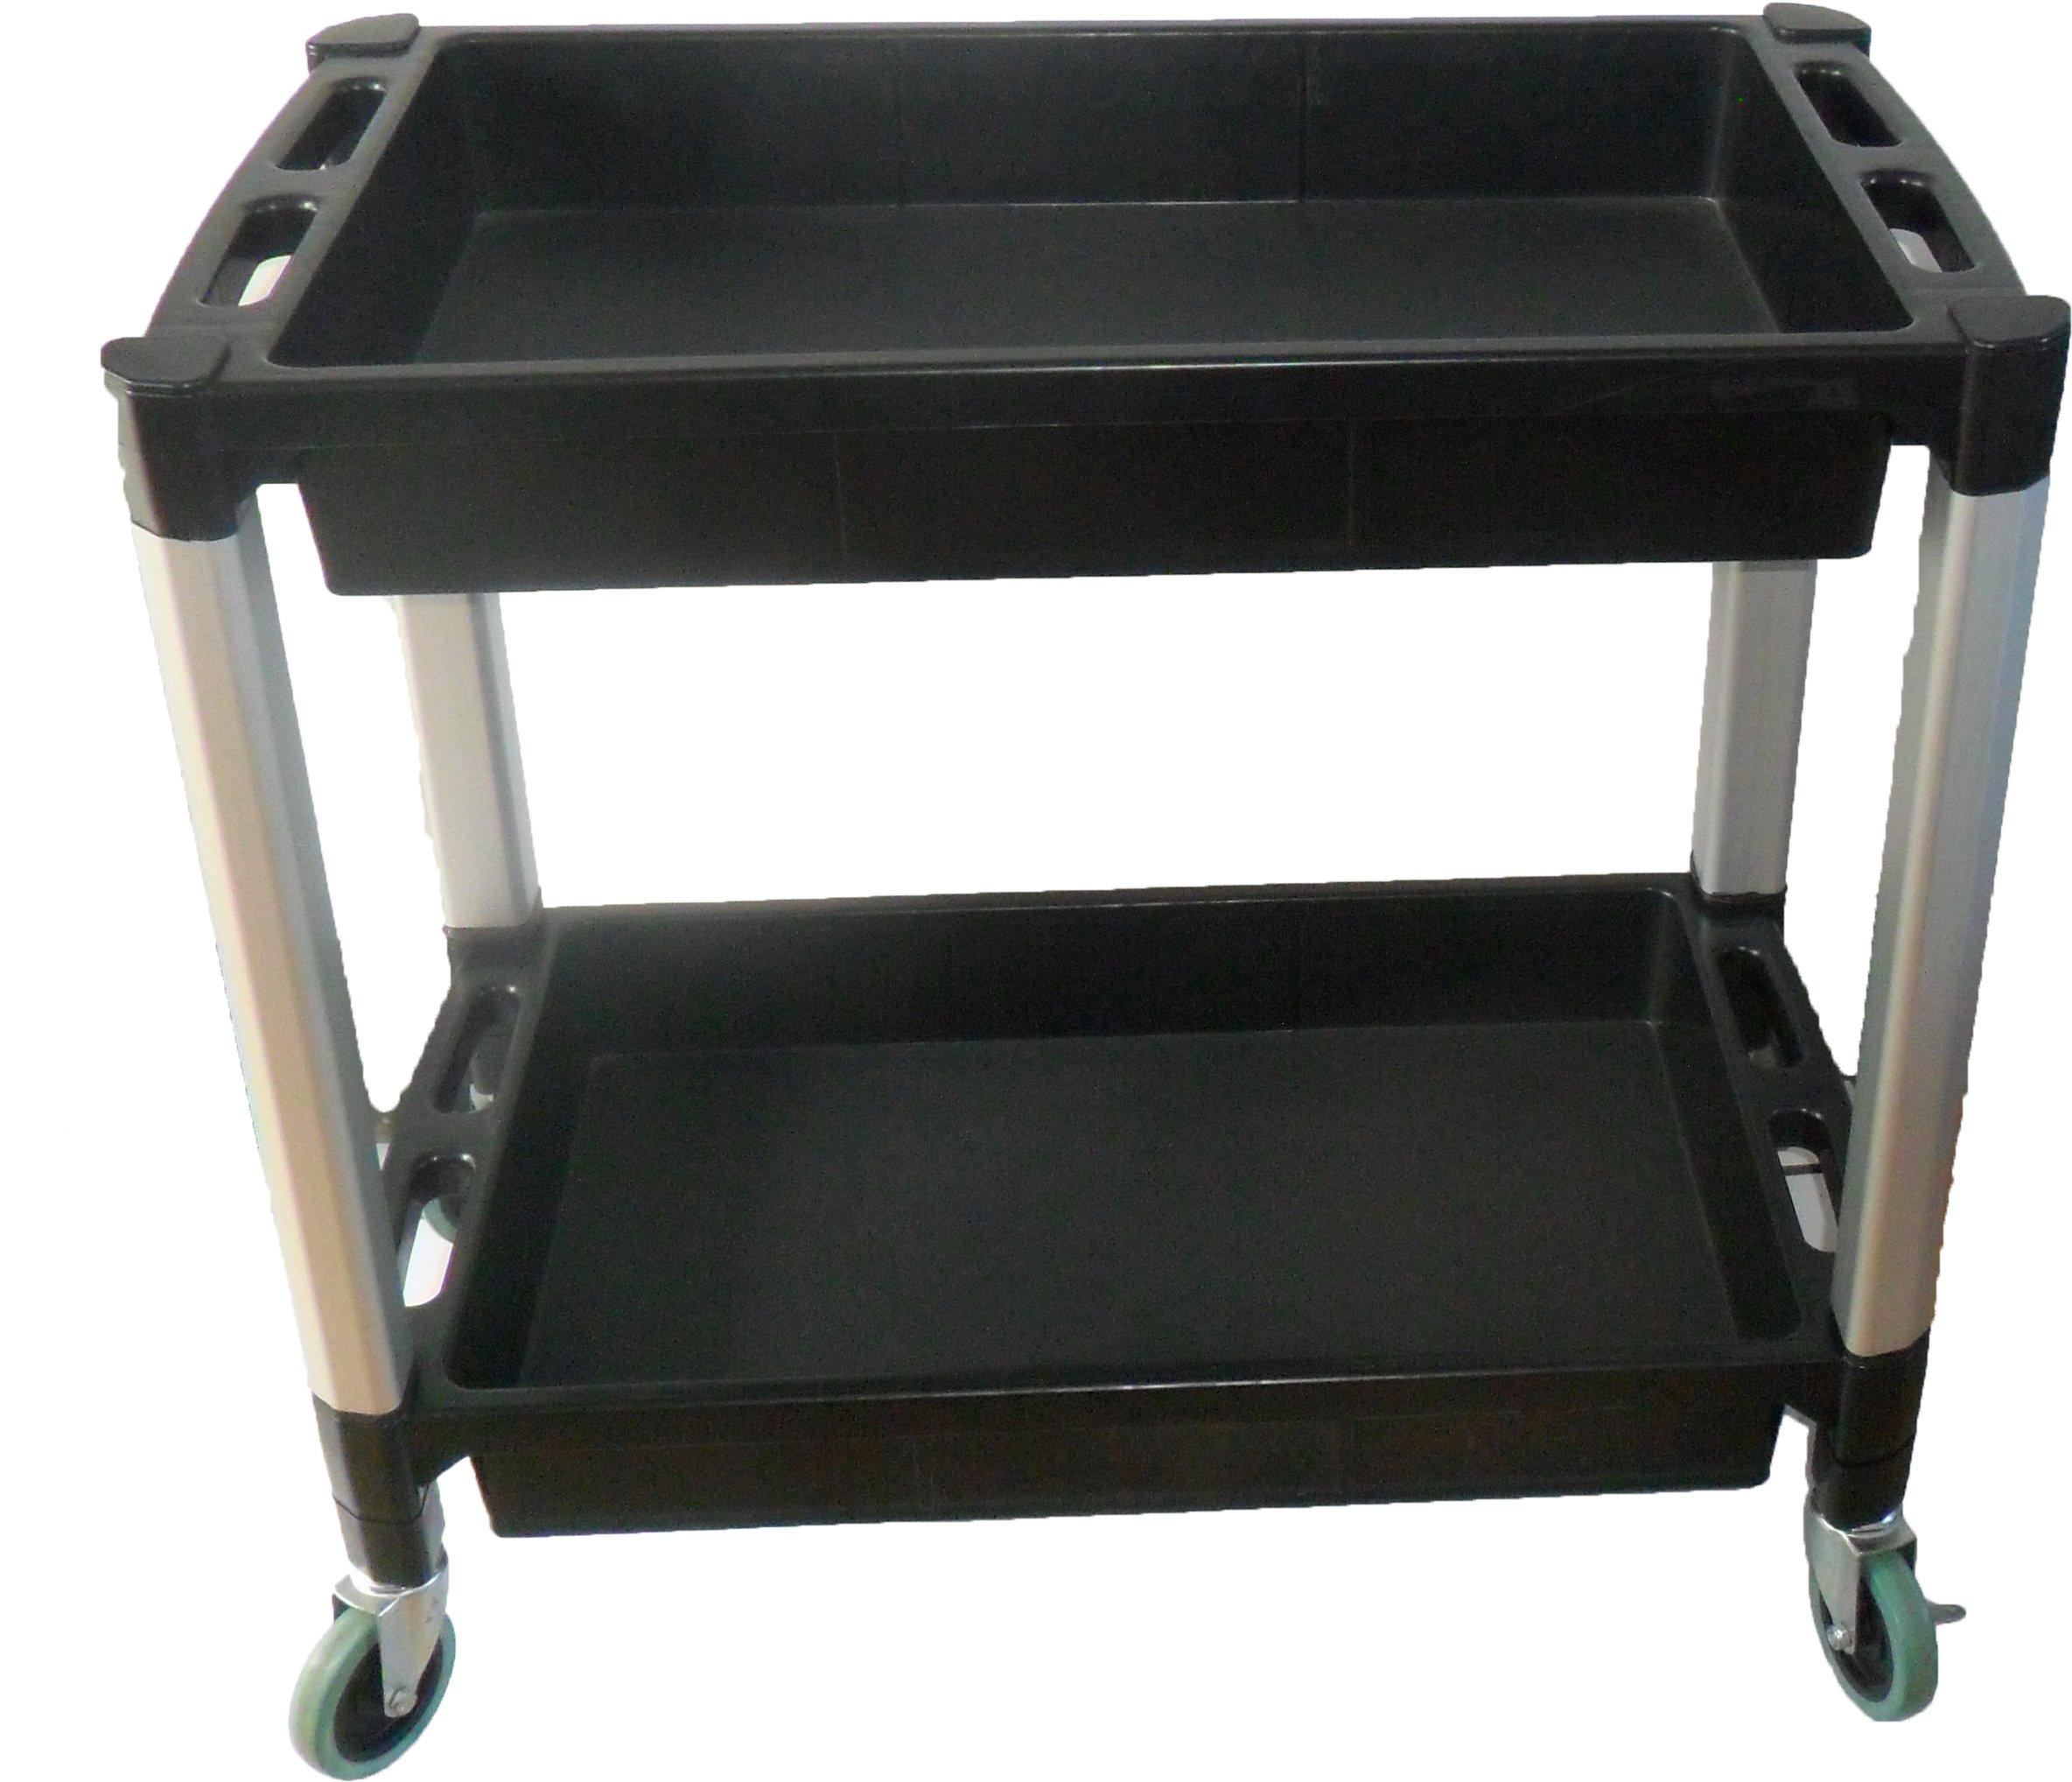 MaxWorks 80384 Black and Gray Two-Tray Service/Utility Cart With Aluminum Legs And 4'' Diameter Swivel Castors by MaxWorks (Image #5)